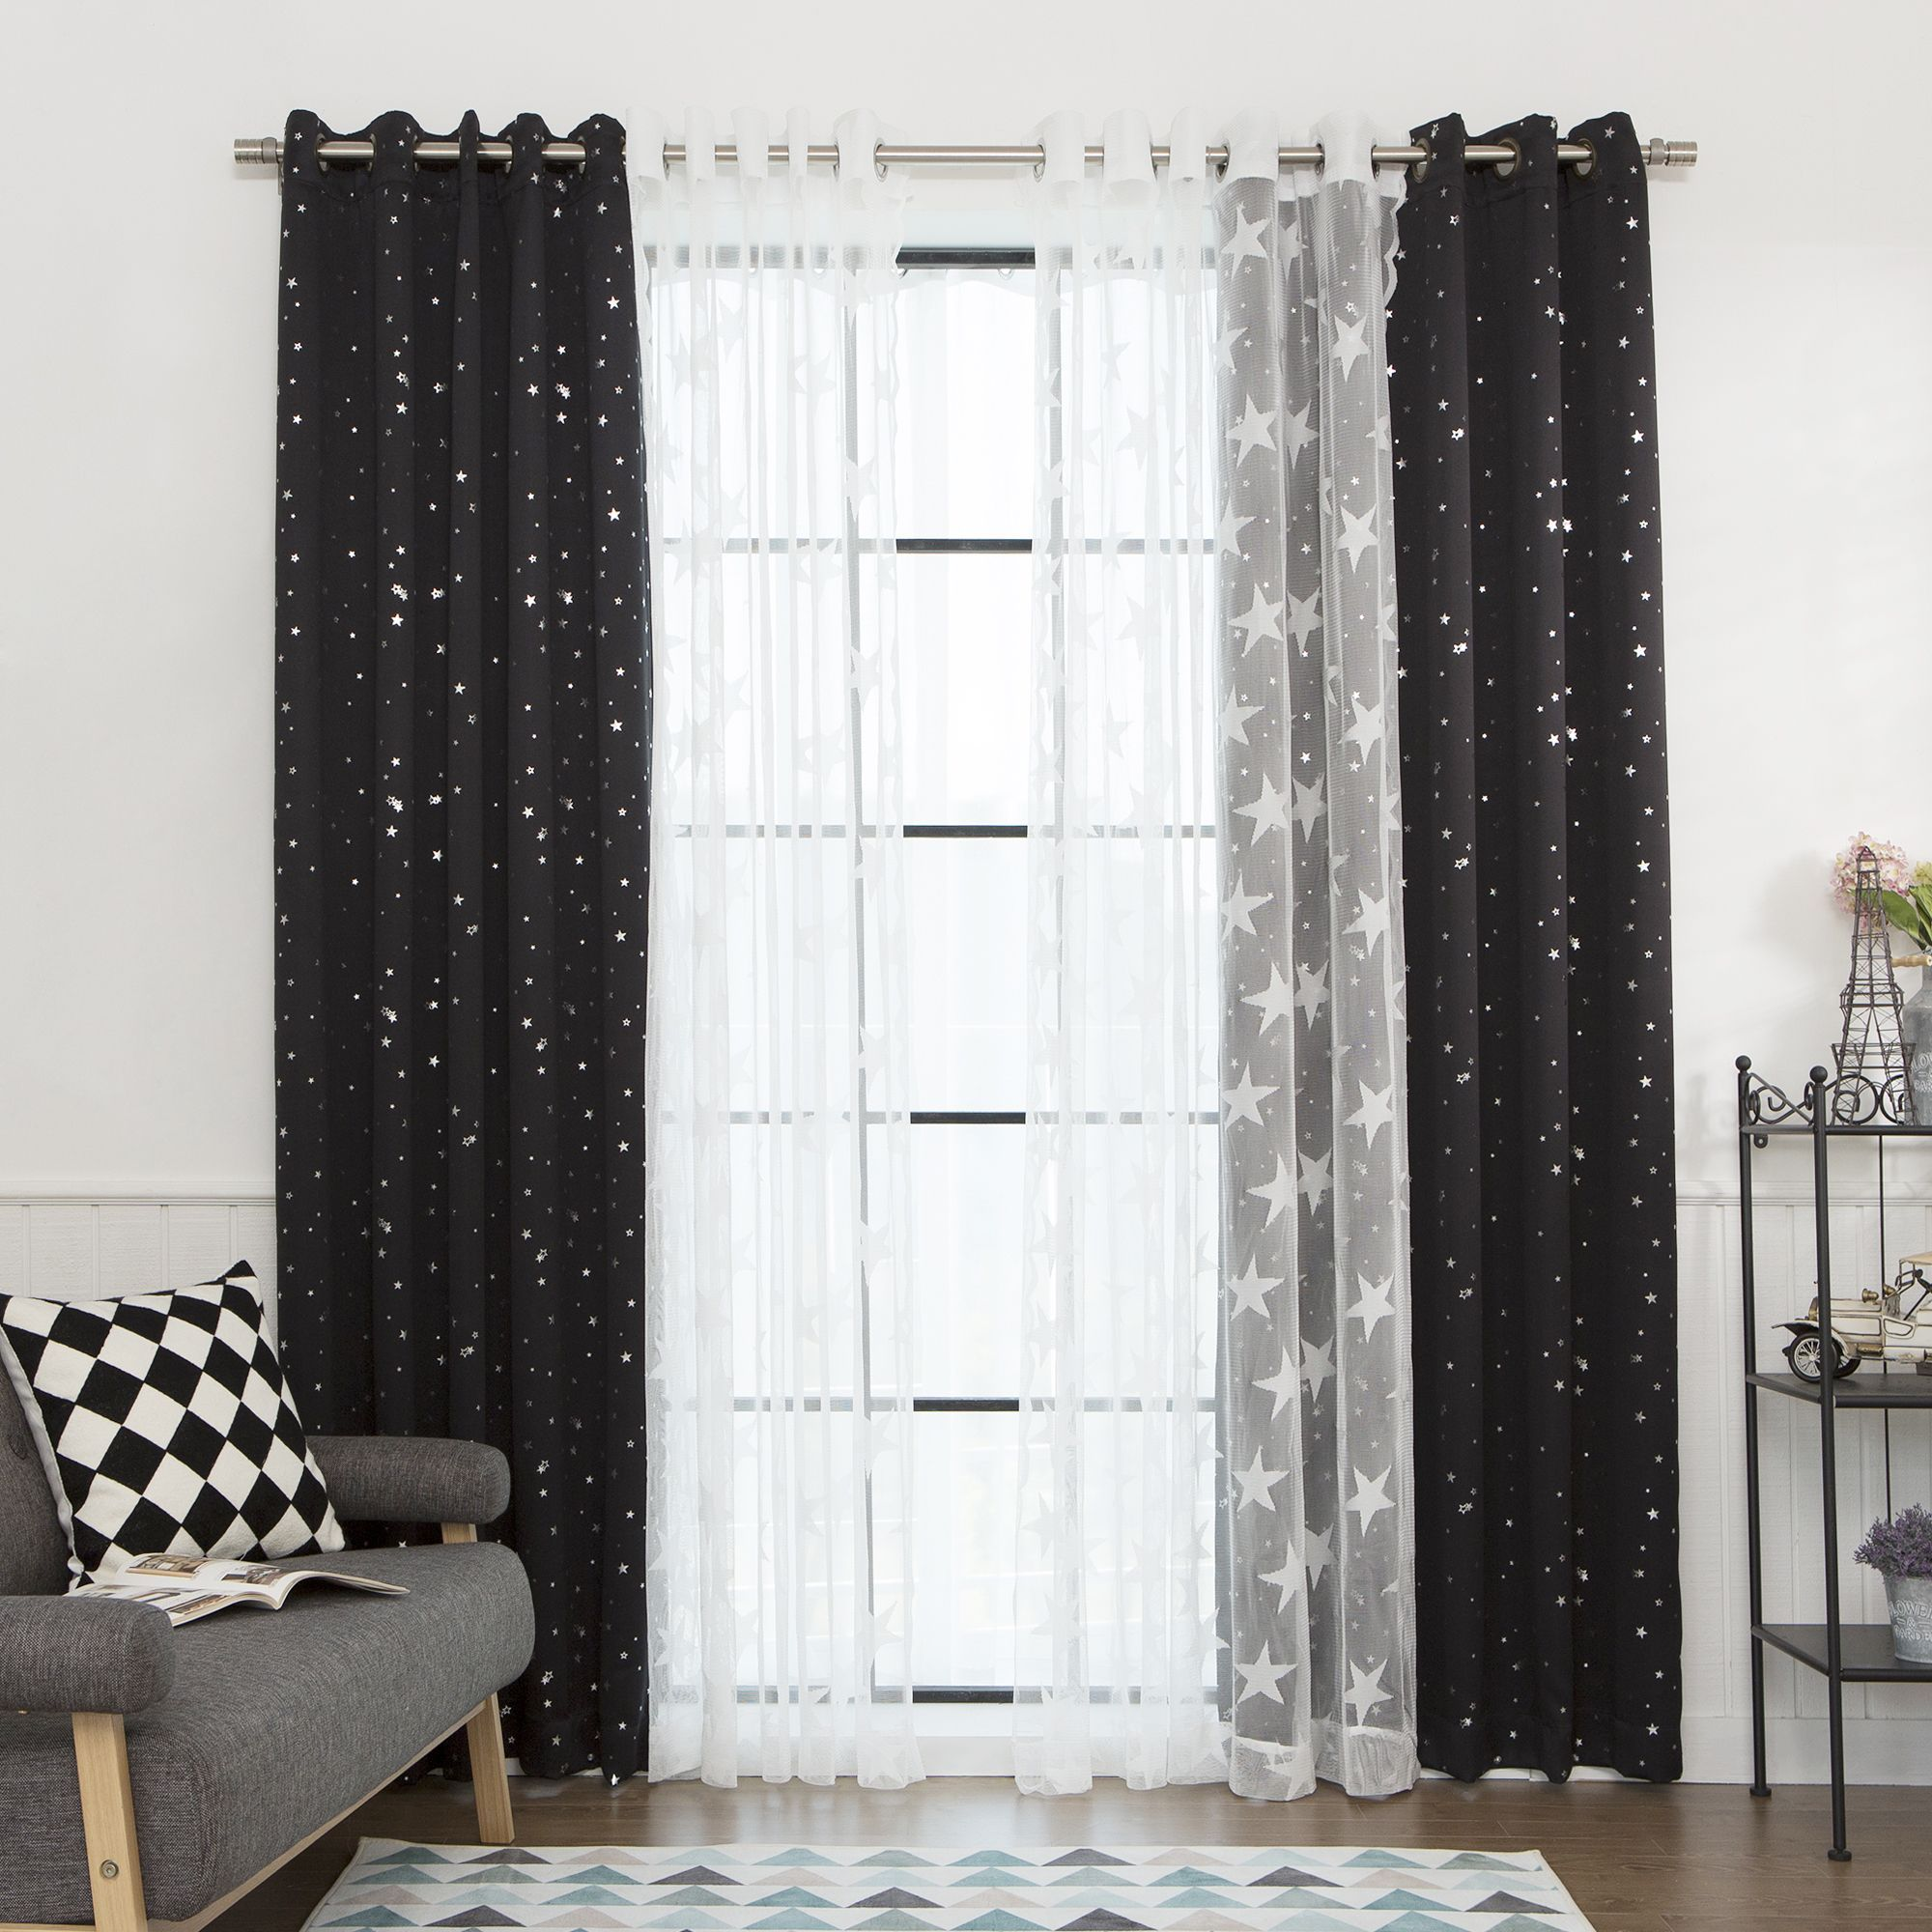 MIX & MATCH CURTAINS Add depth and texture to your windows with the  versatile Mix & Match set which includes, two Big Star net lace curtains  and two Star ...